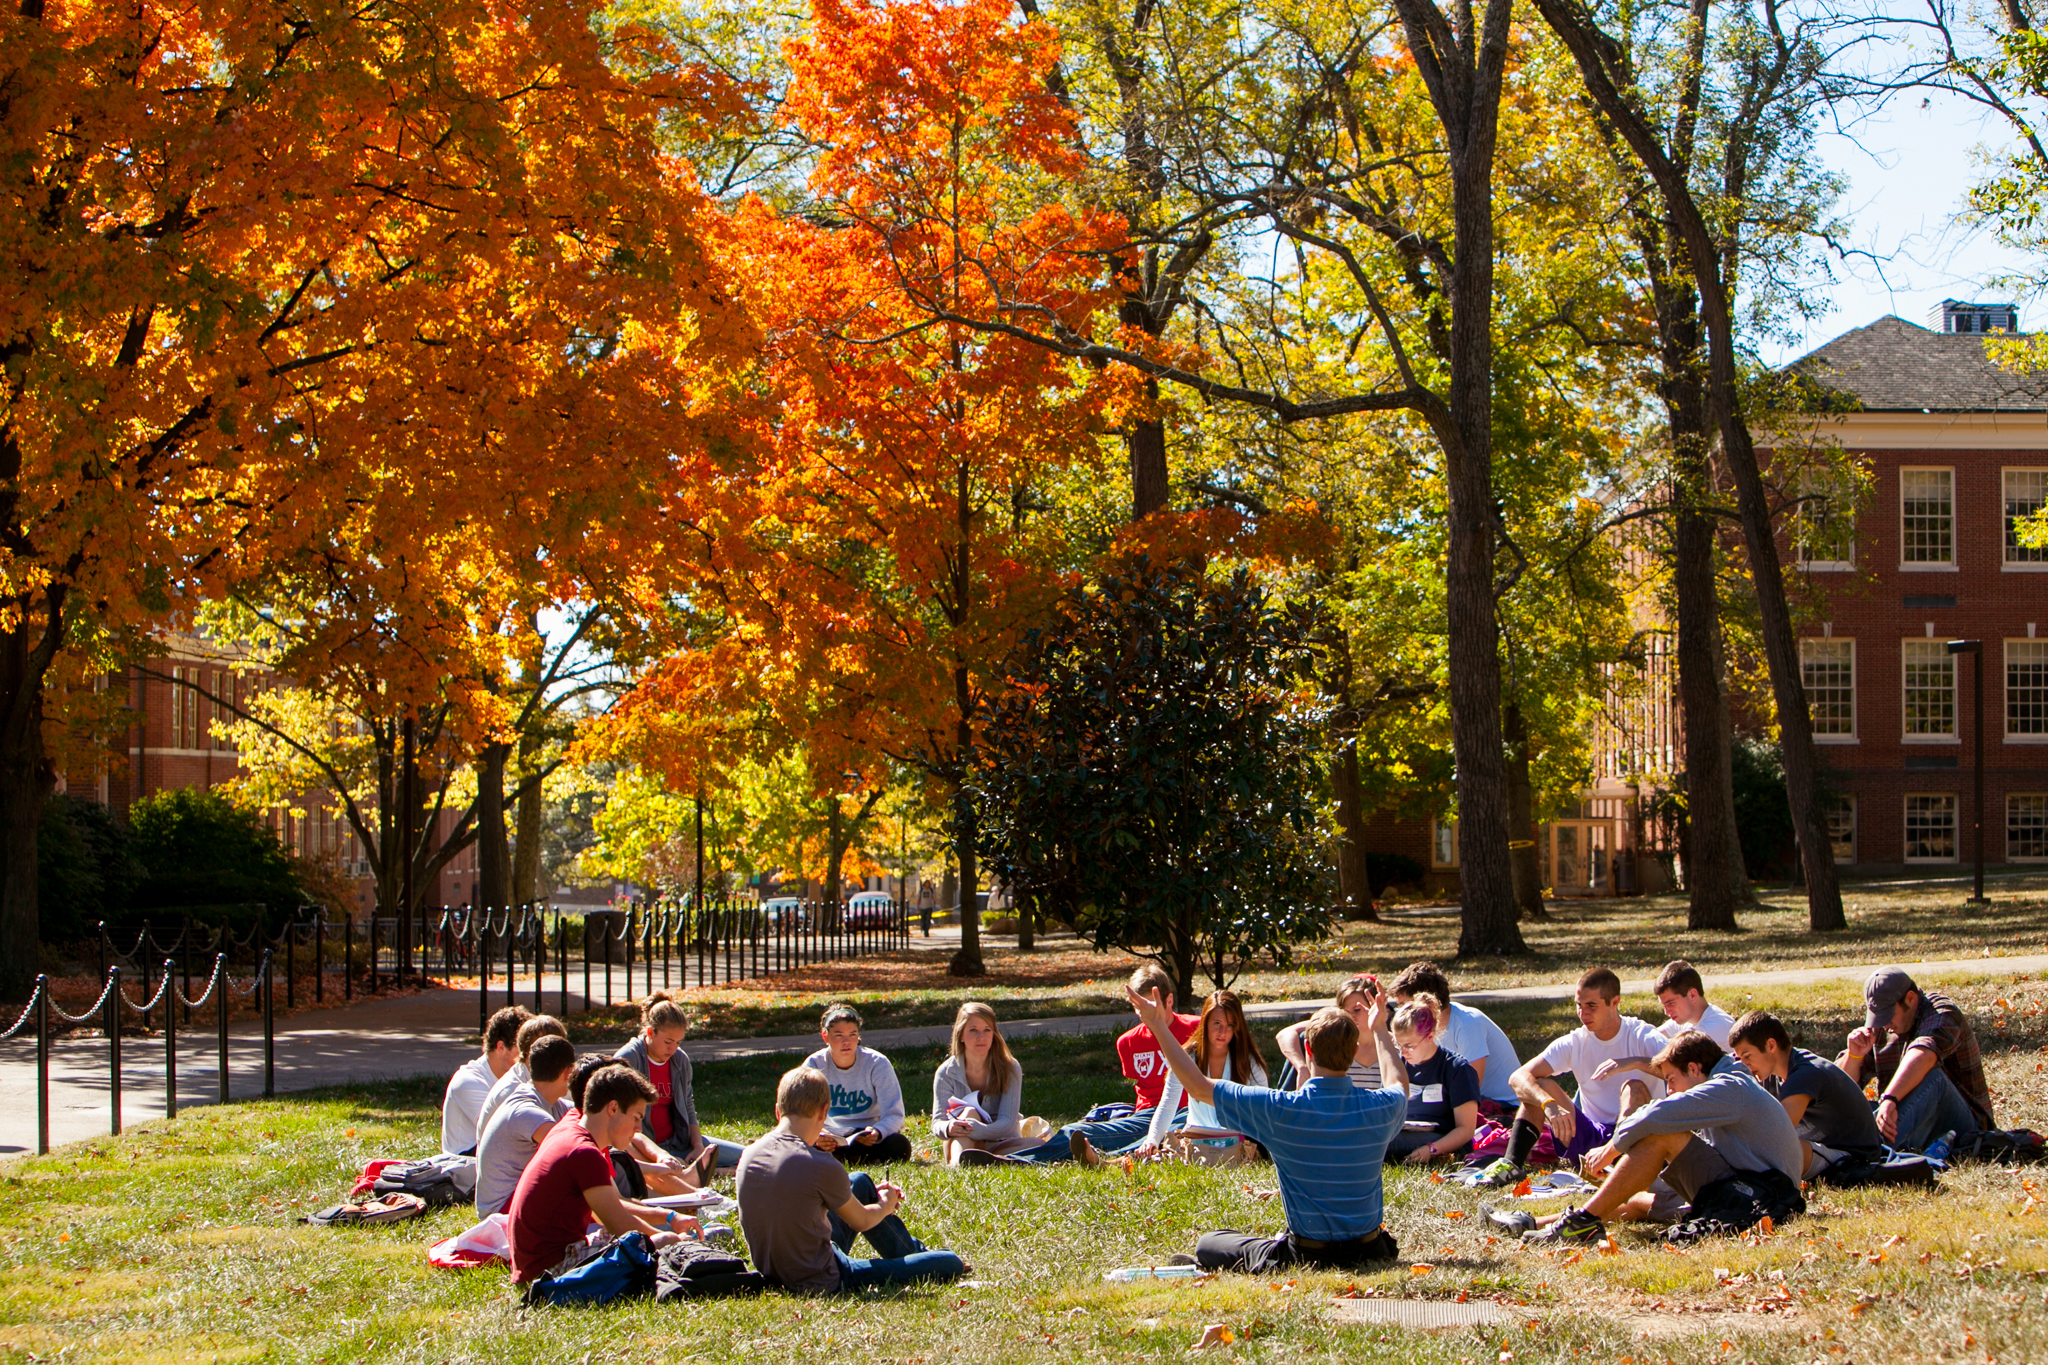 Students sitting on Miami University's campus in the fall